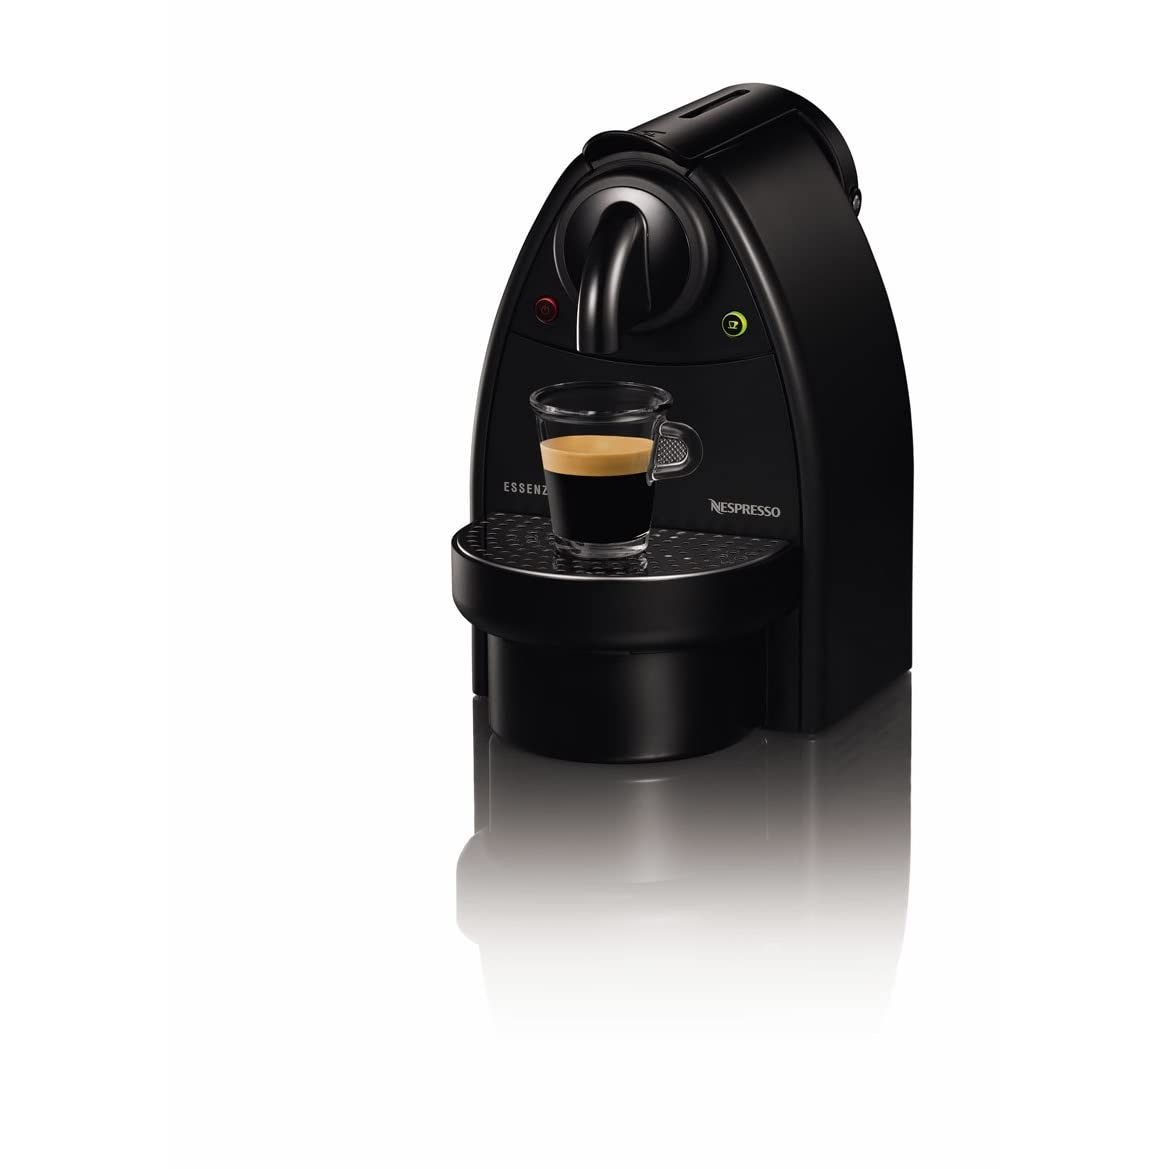 Nespresso Essenza C91 Manual Espresso Maker